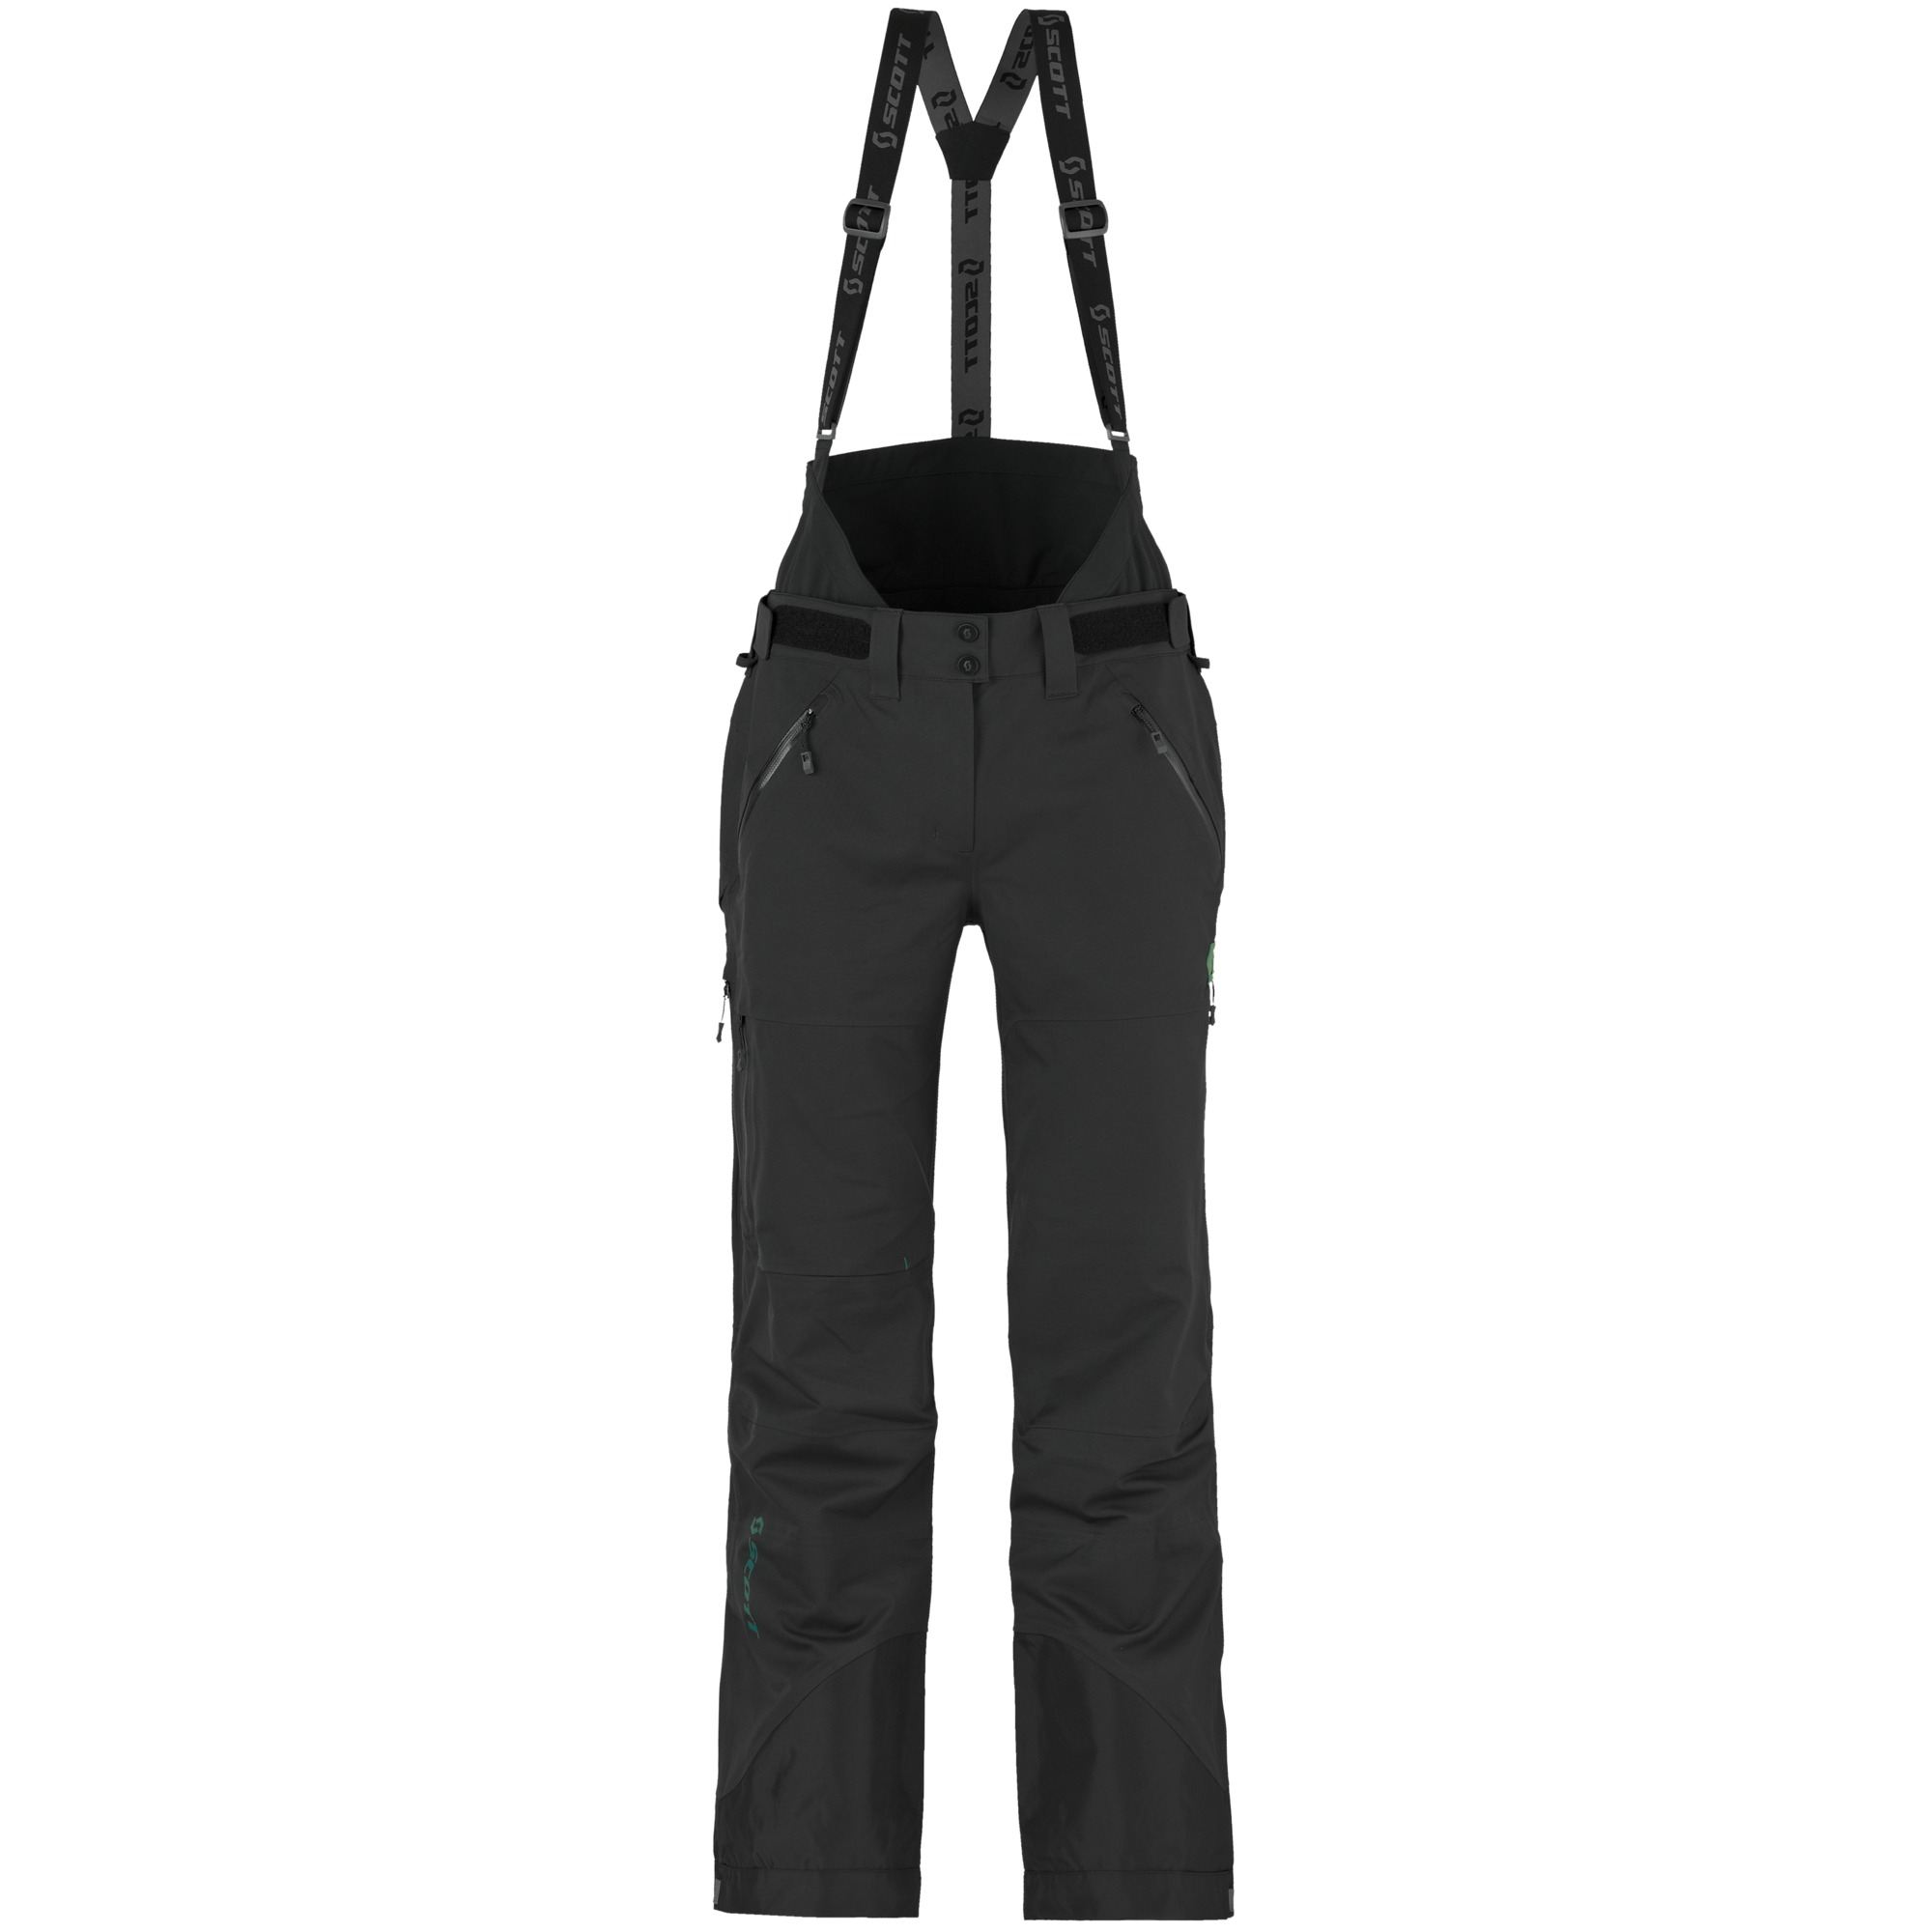 SCOTT Vertic 3L Women's Pant